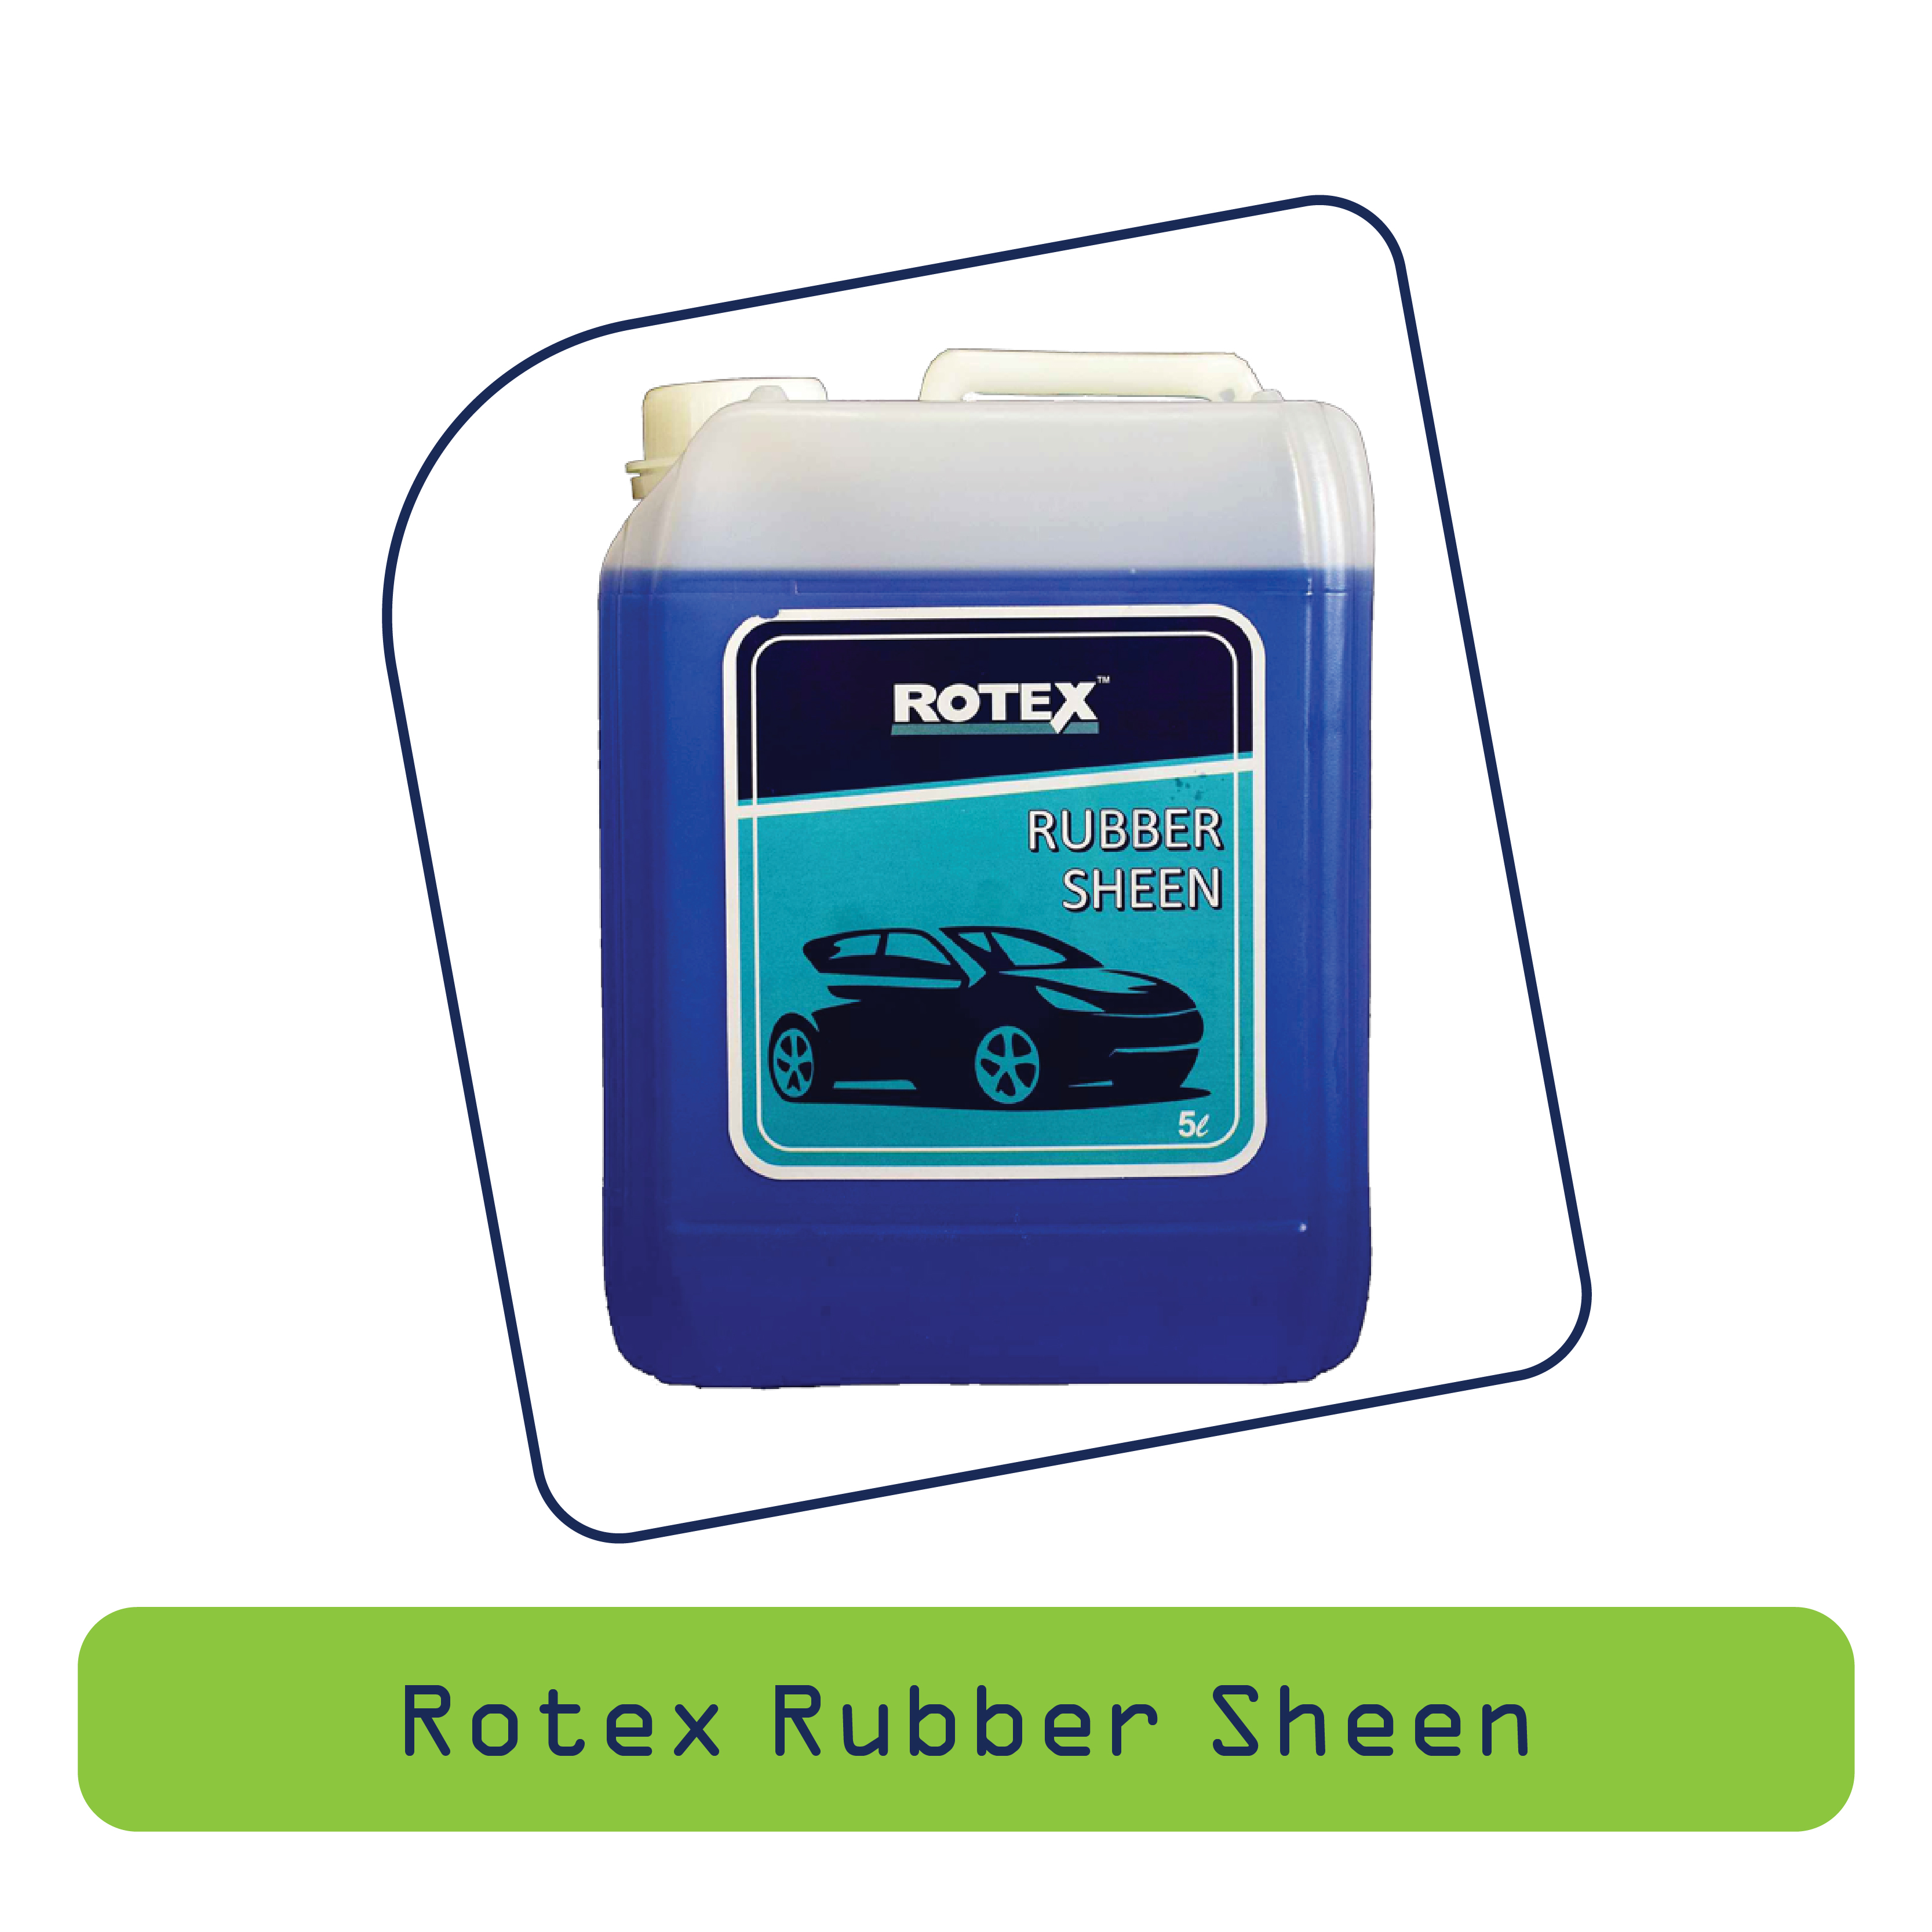 Rotex Rubber Sheen